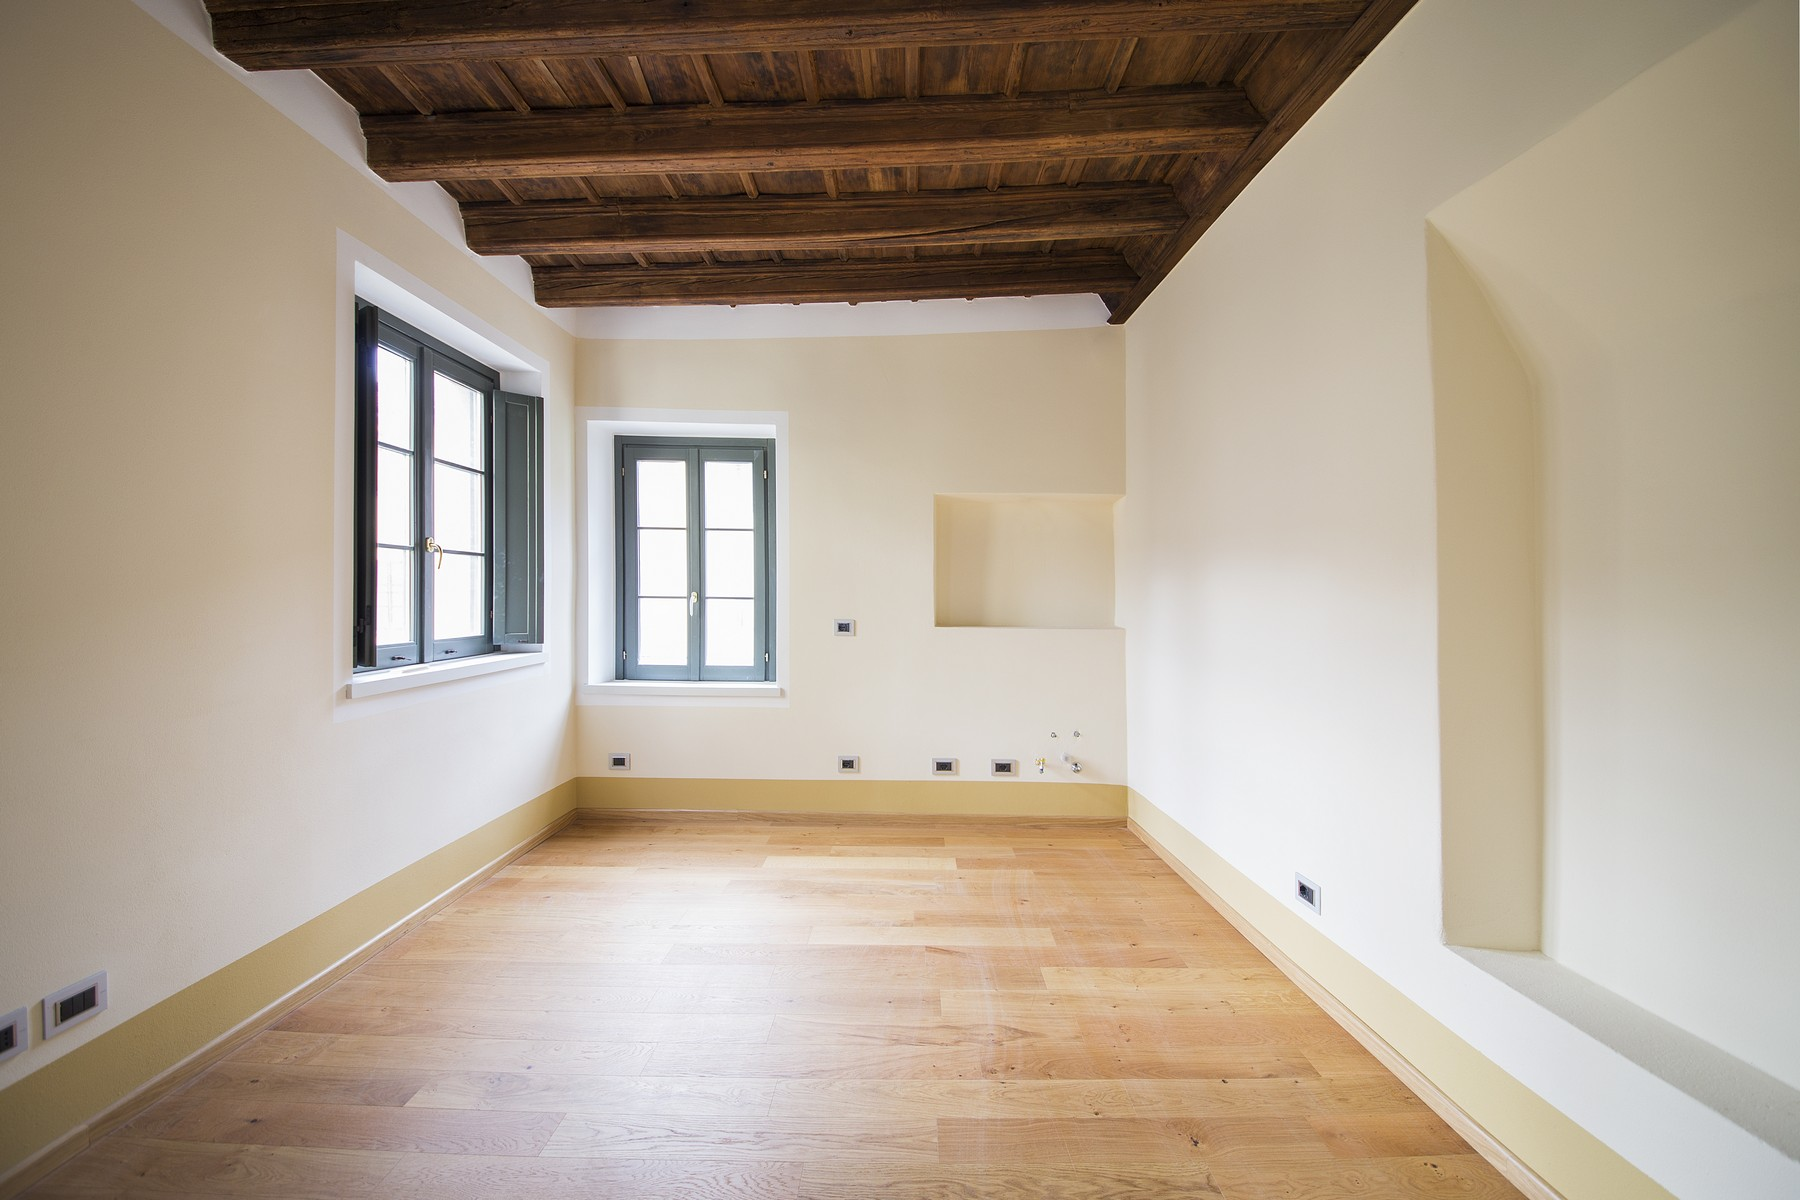 Additional photo for property listing at Magnificent semi-detached house in the historic center of Como Via Cinque Giornate Como, Como 22100 Italie